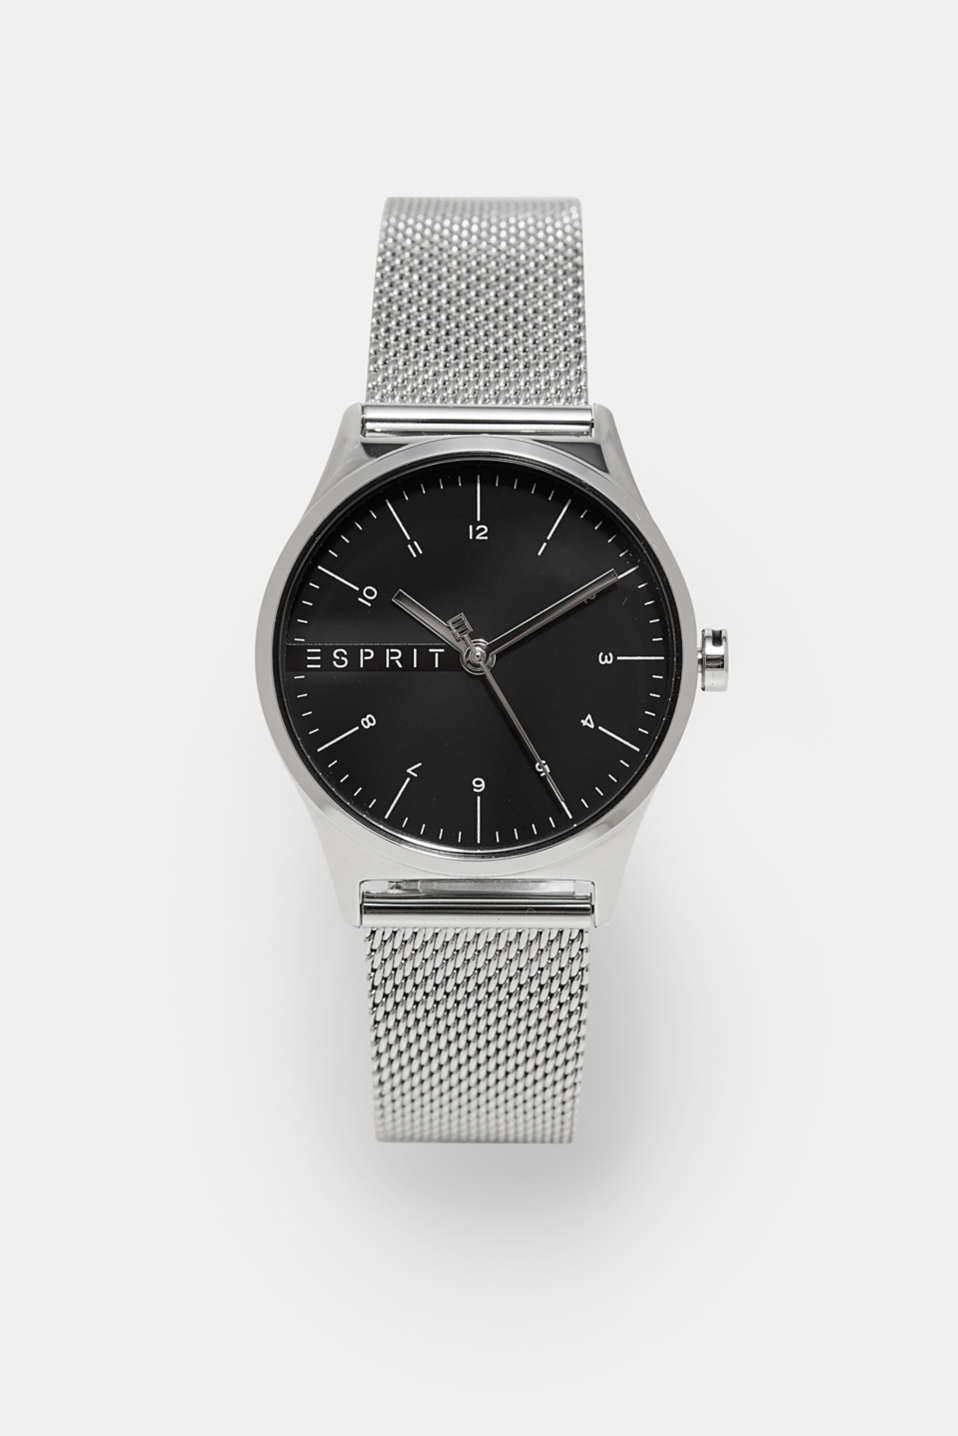 Esprit - Mens watch with a Milanese strap